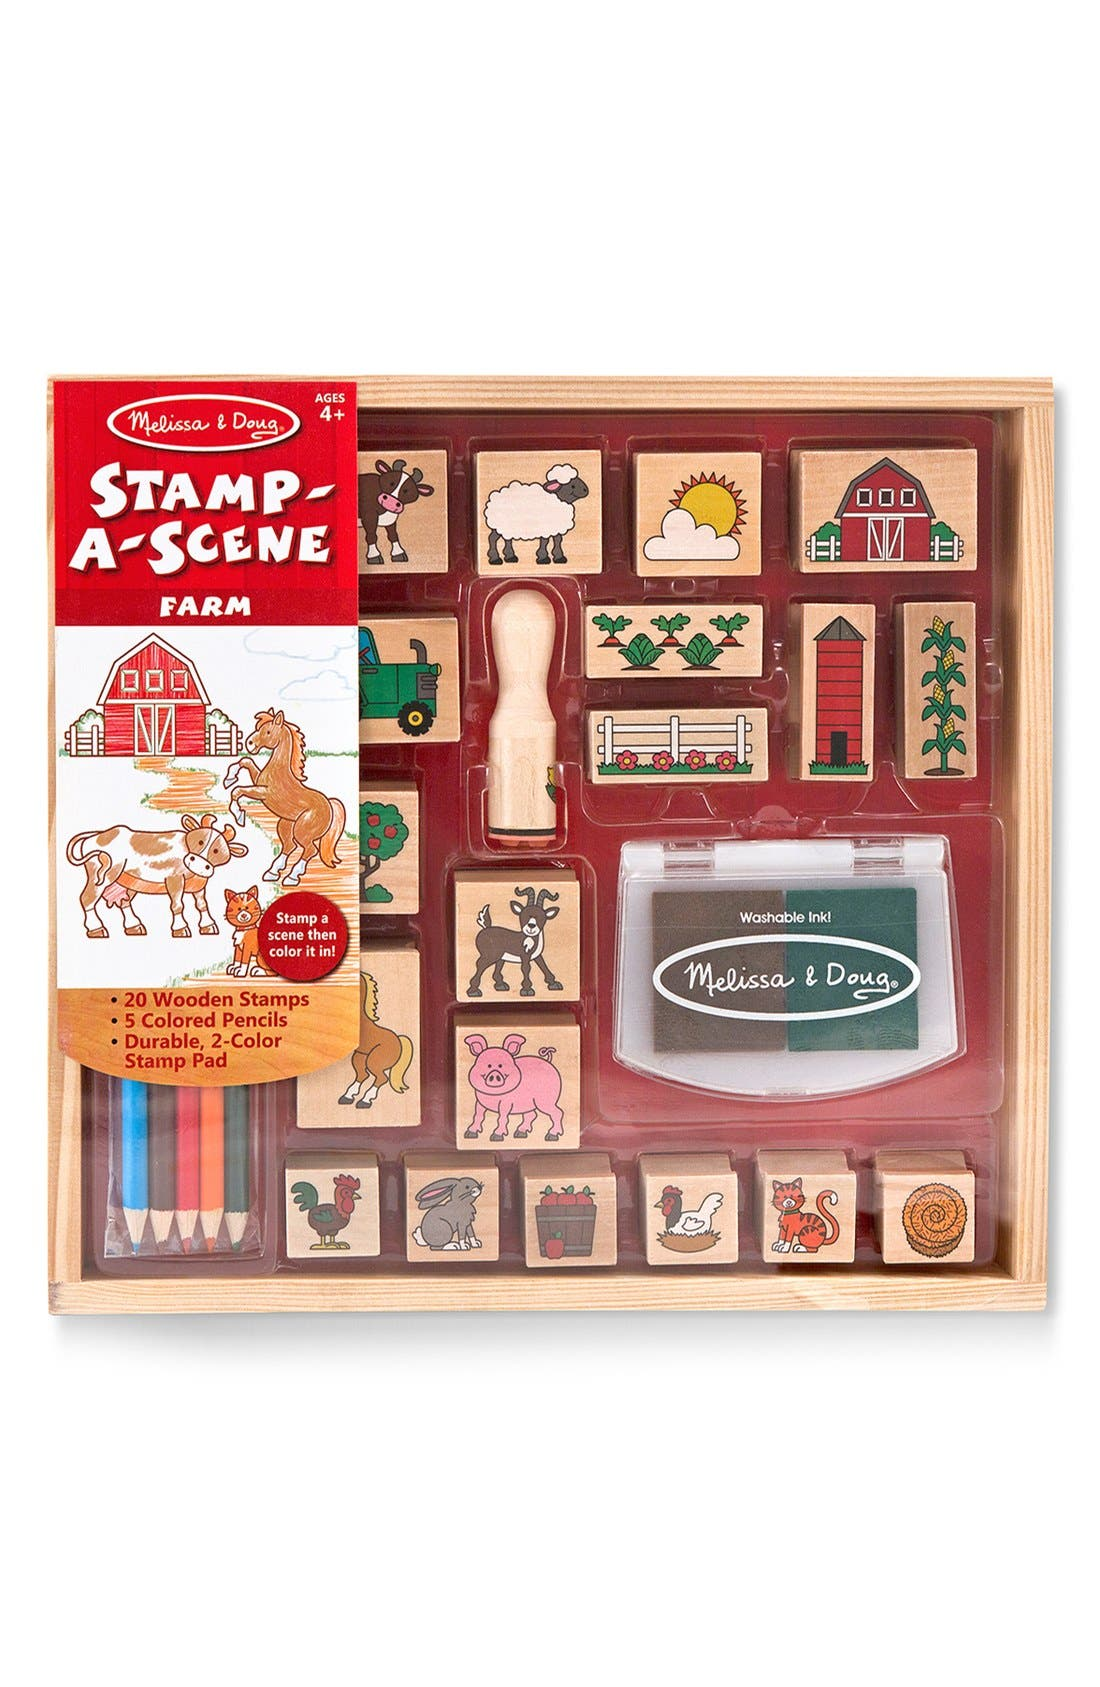 Main Image - Melissa & Doug 'Stamp-A-Scene - Farm' Stamp Set